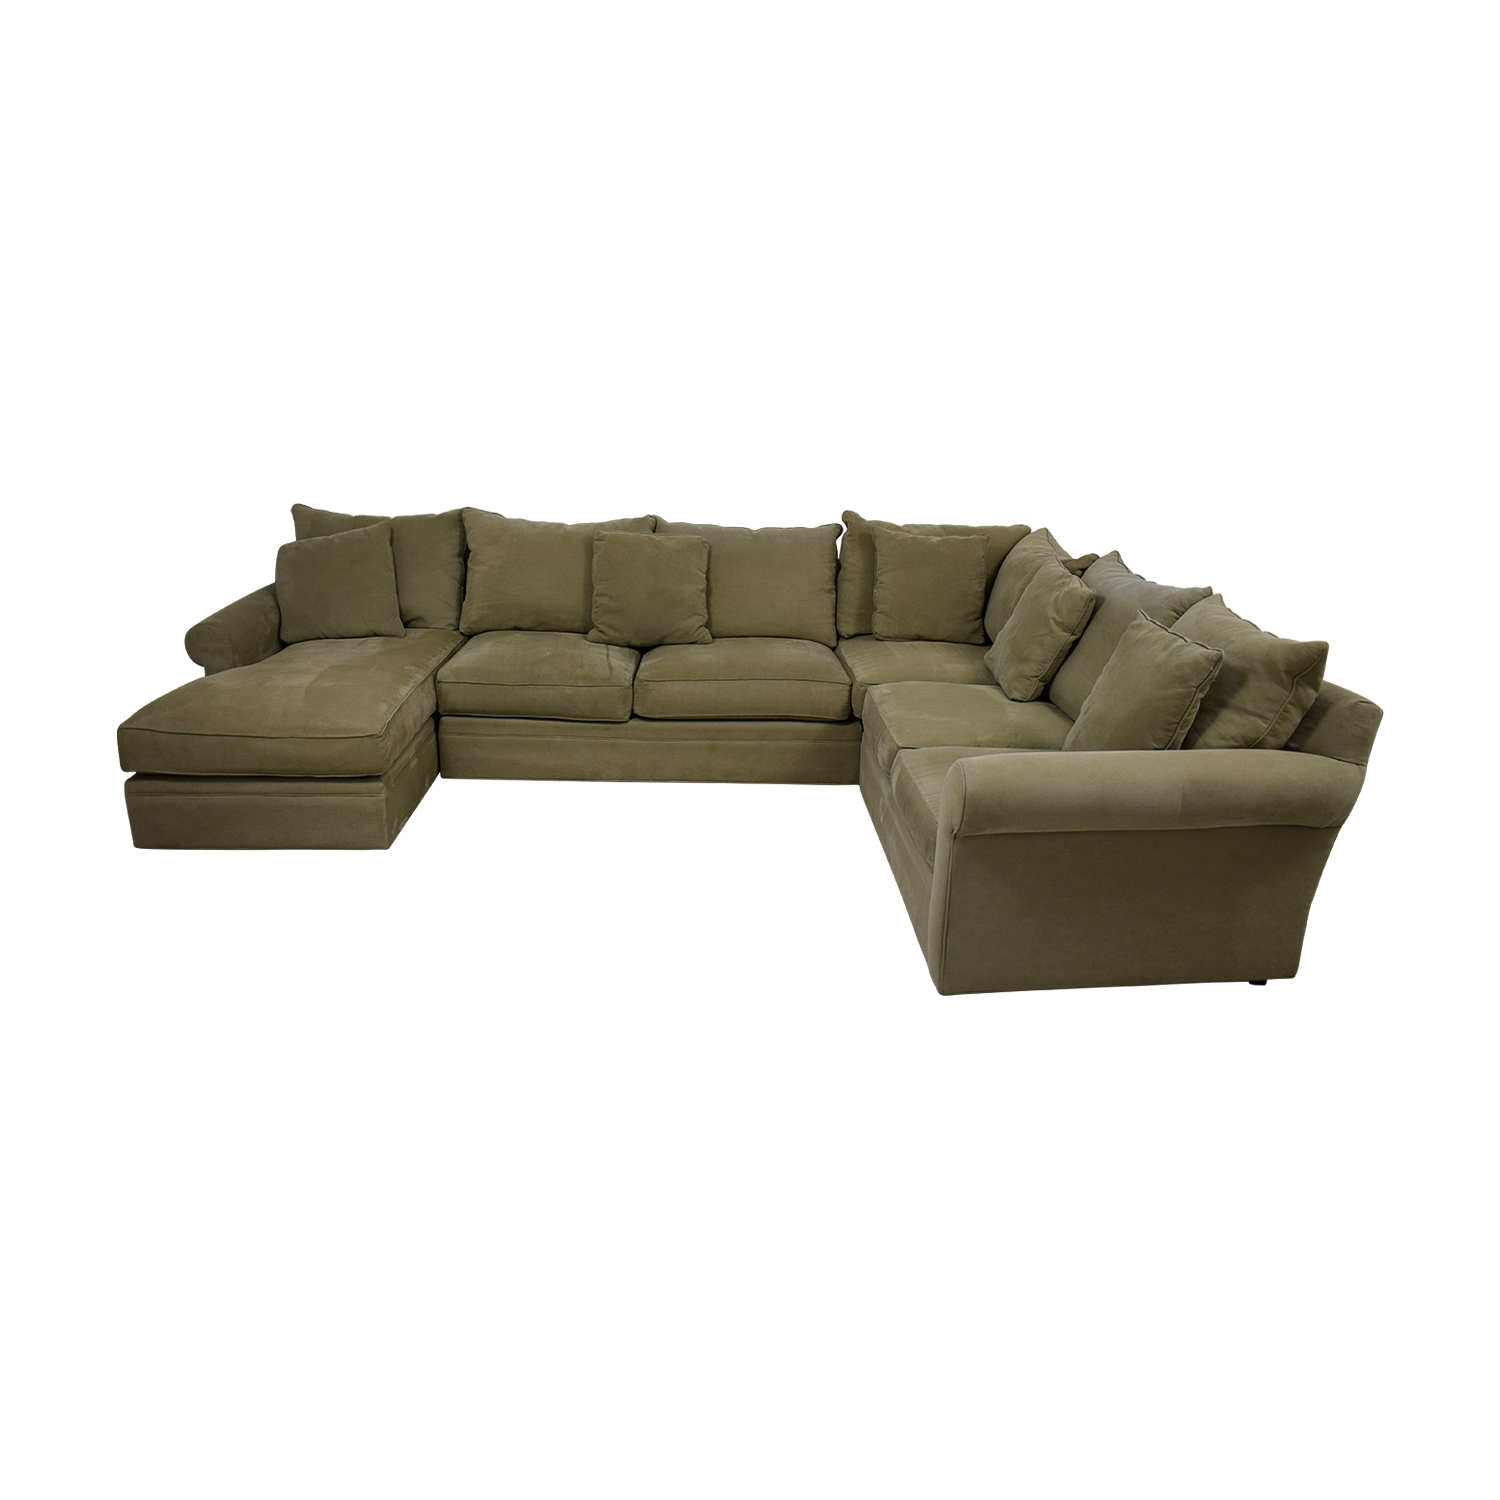 Macy's Macy's Beige L-Shaped Chaise Sectional price